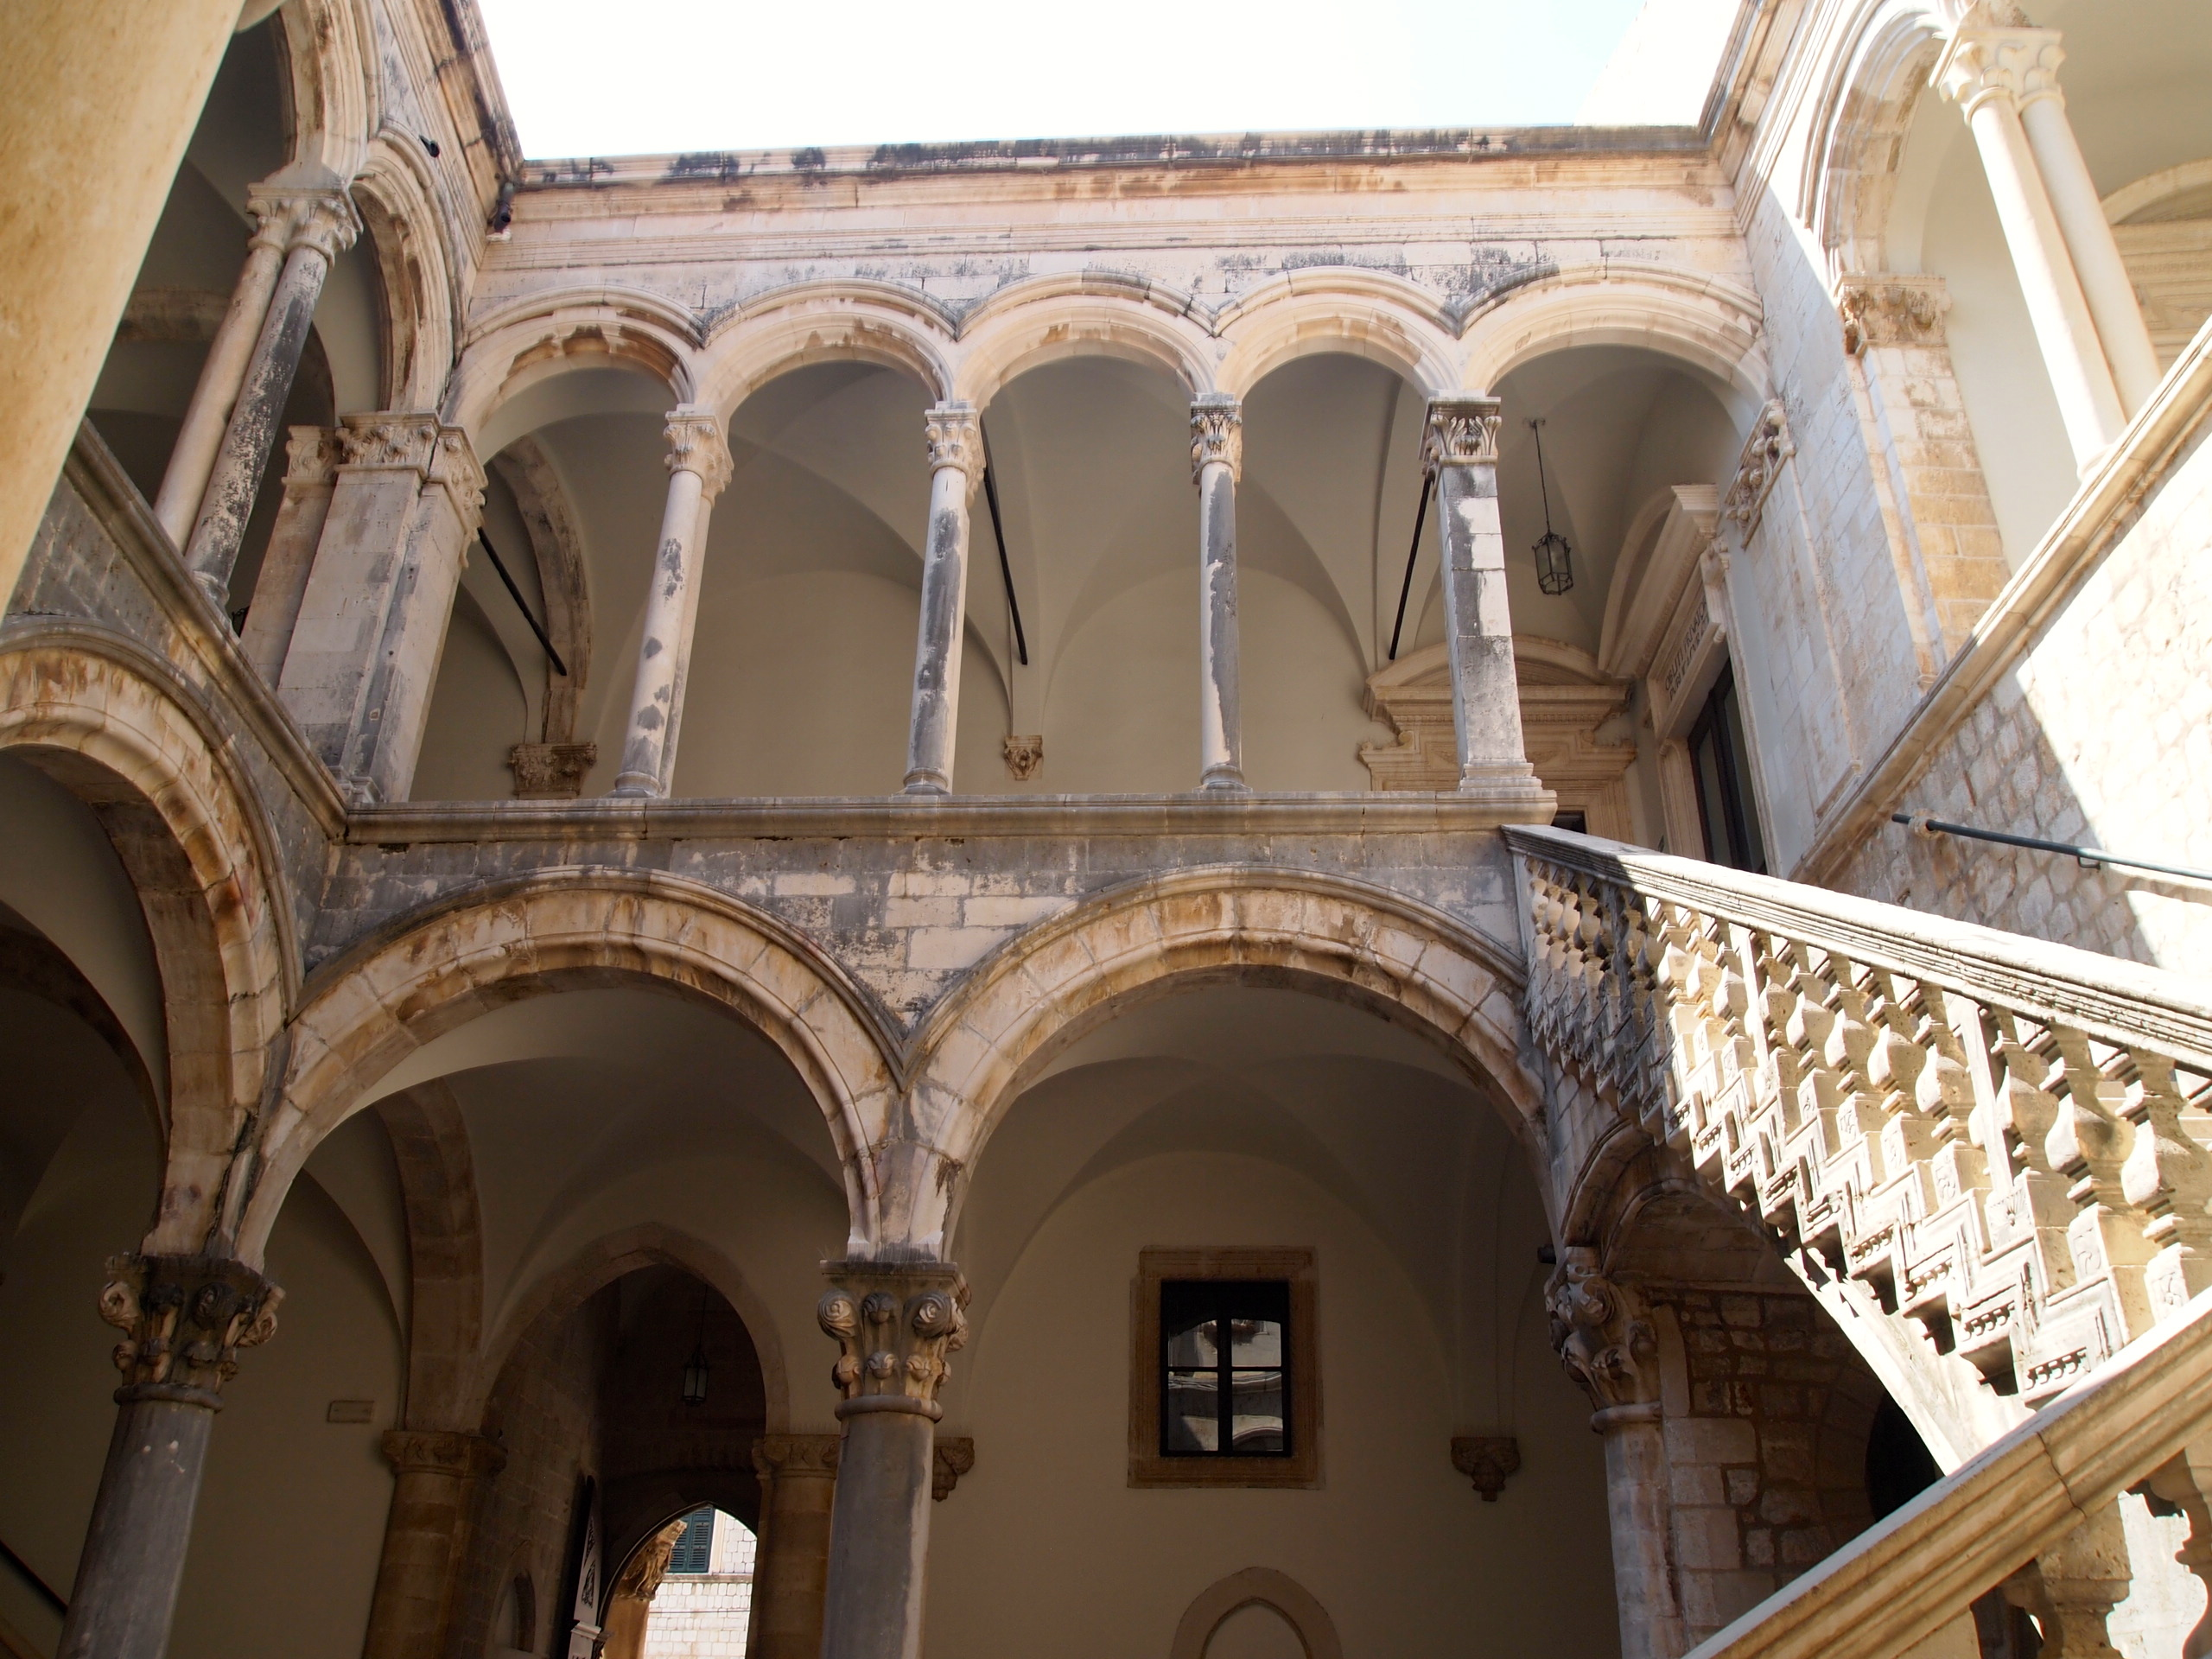 Interior courtyard of Rector's Palace